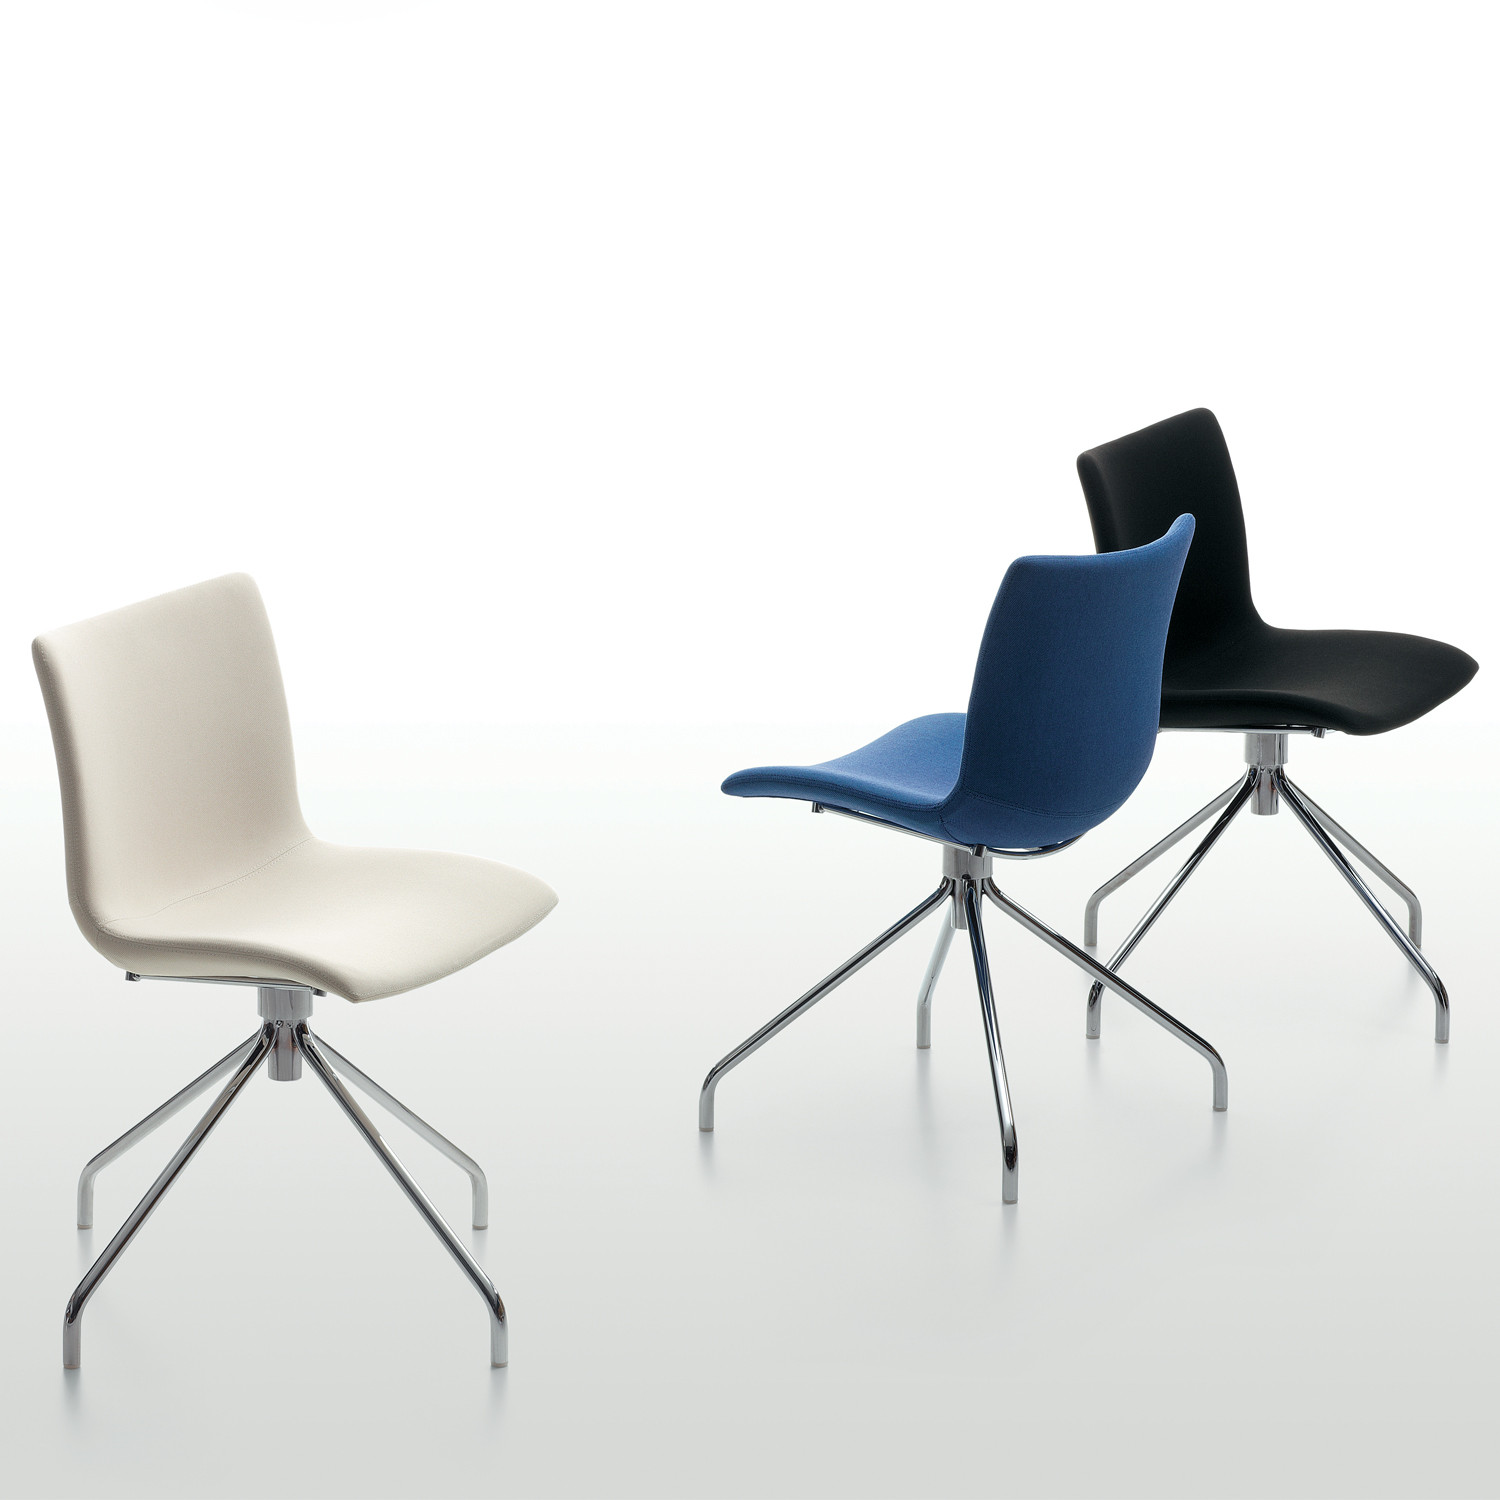 X3.3 Chairs Four Les